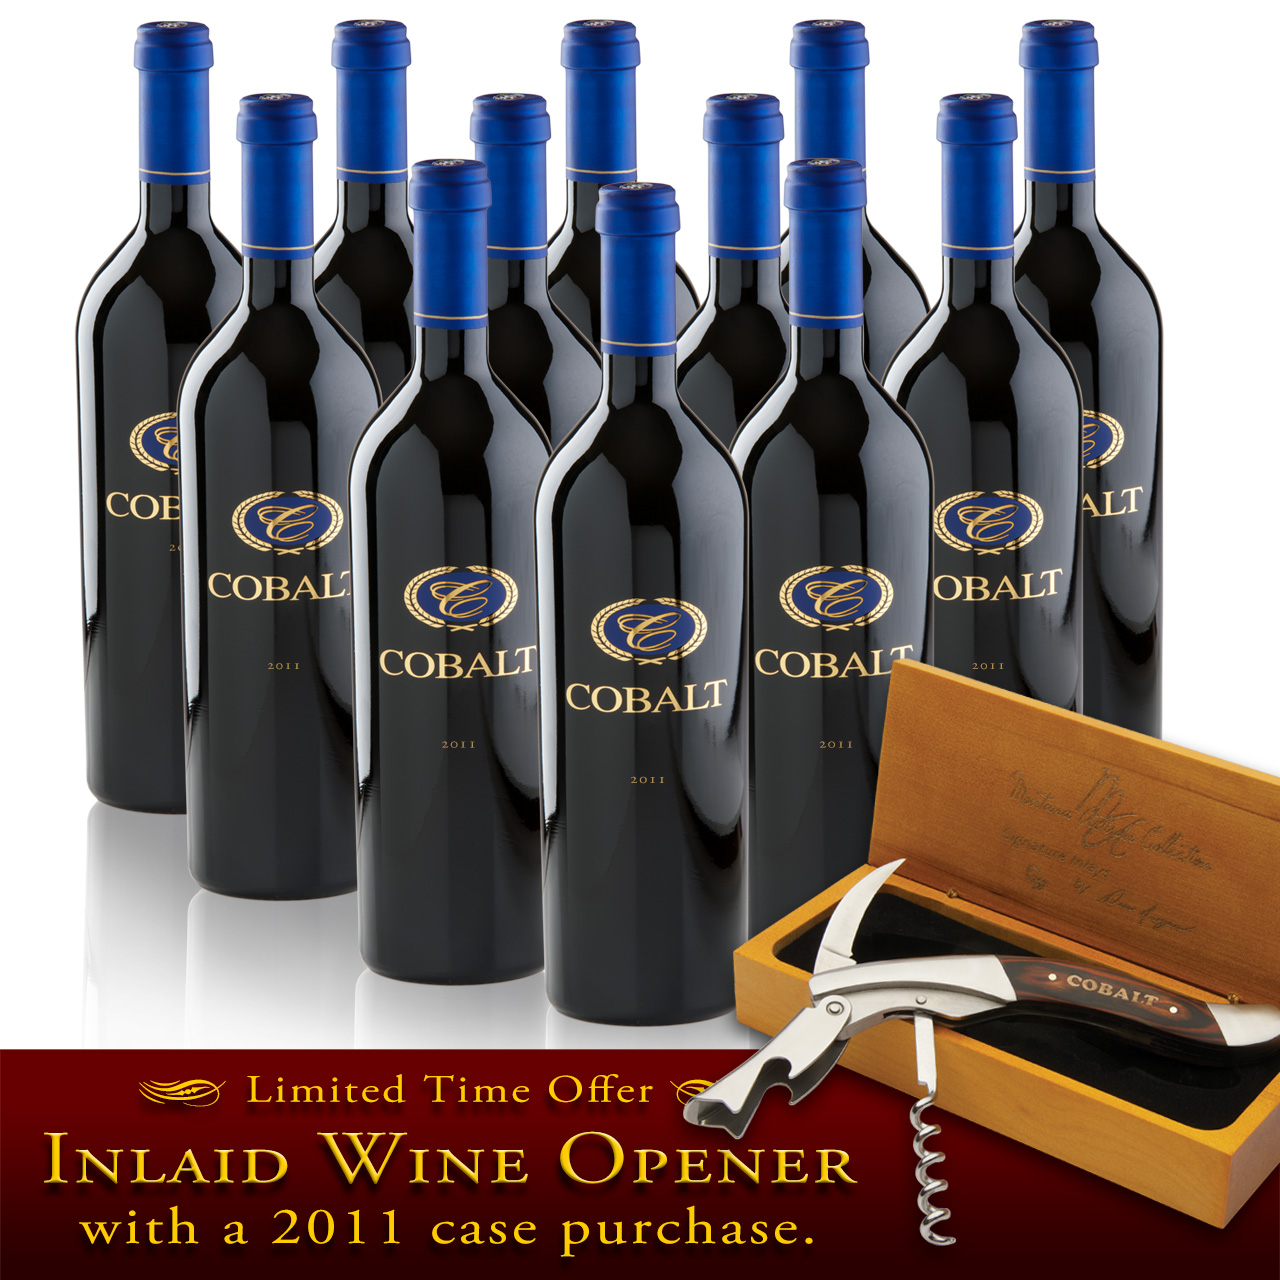 2011 Cobalt Cabernet 12 bottle case w/ Opener